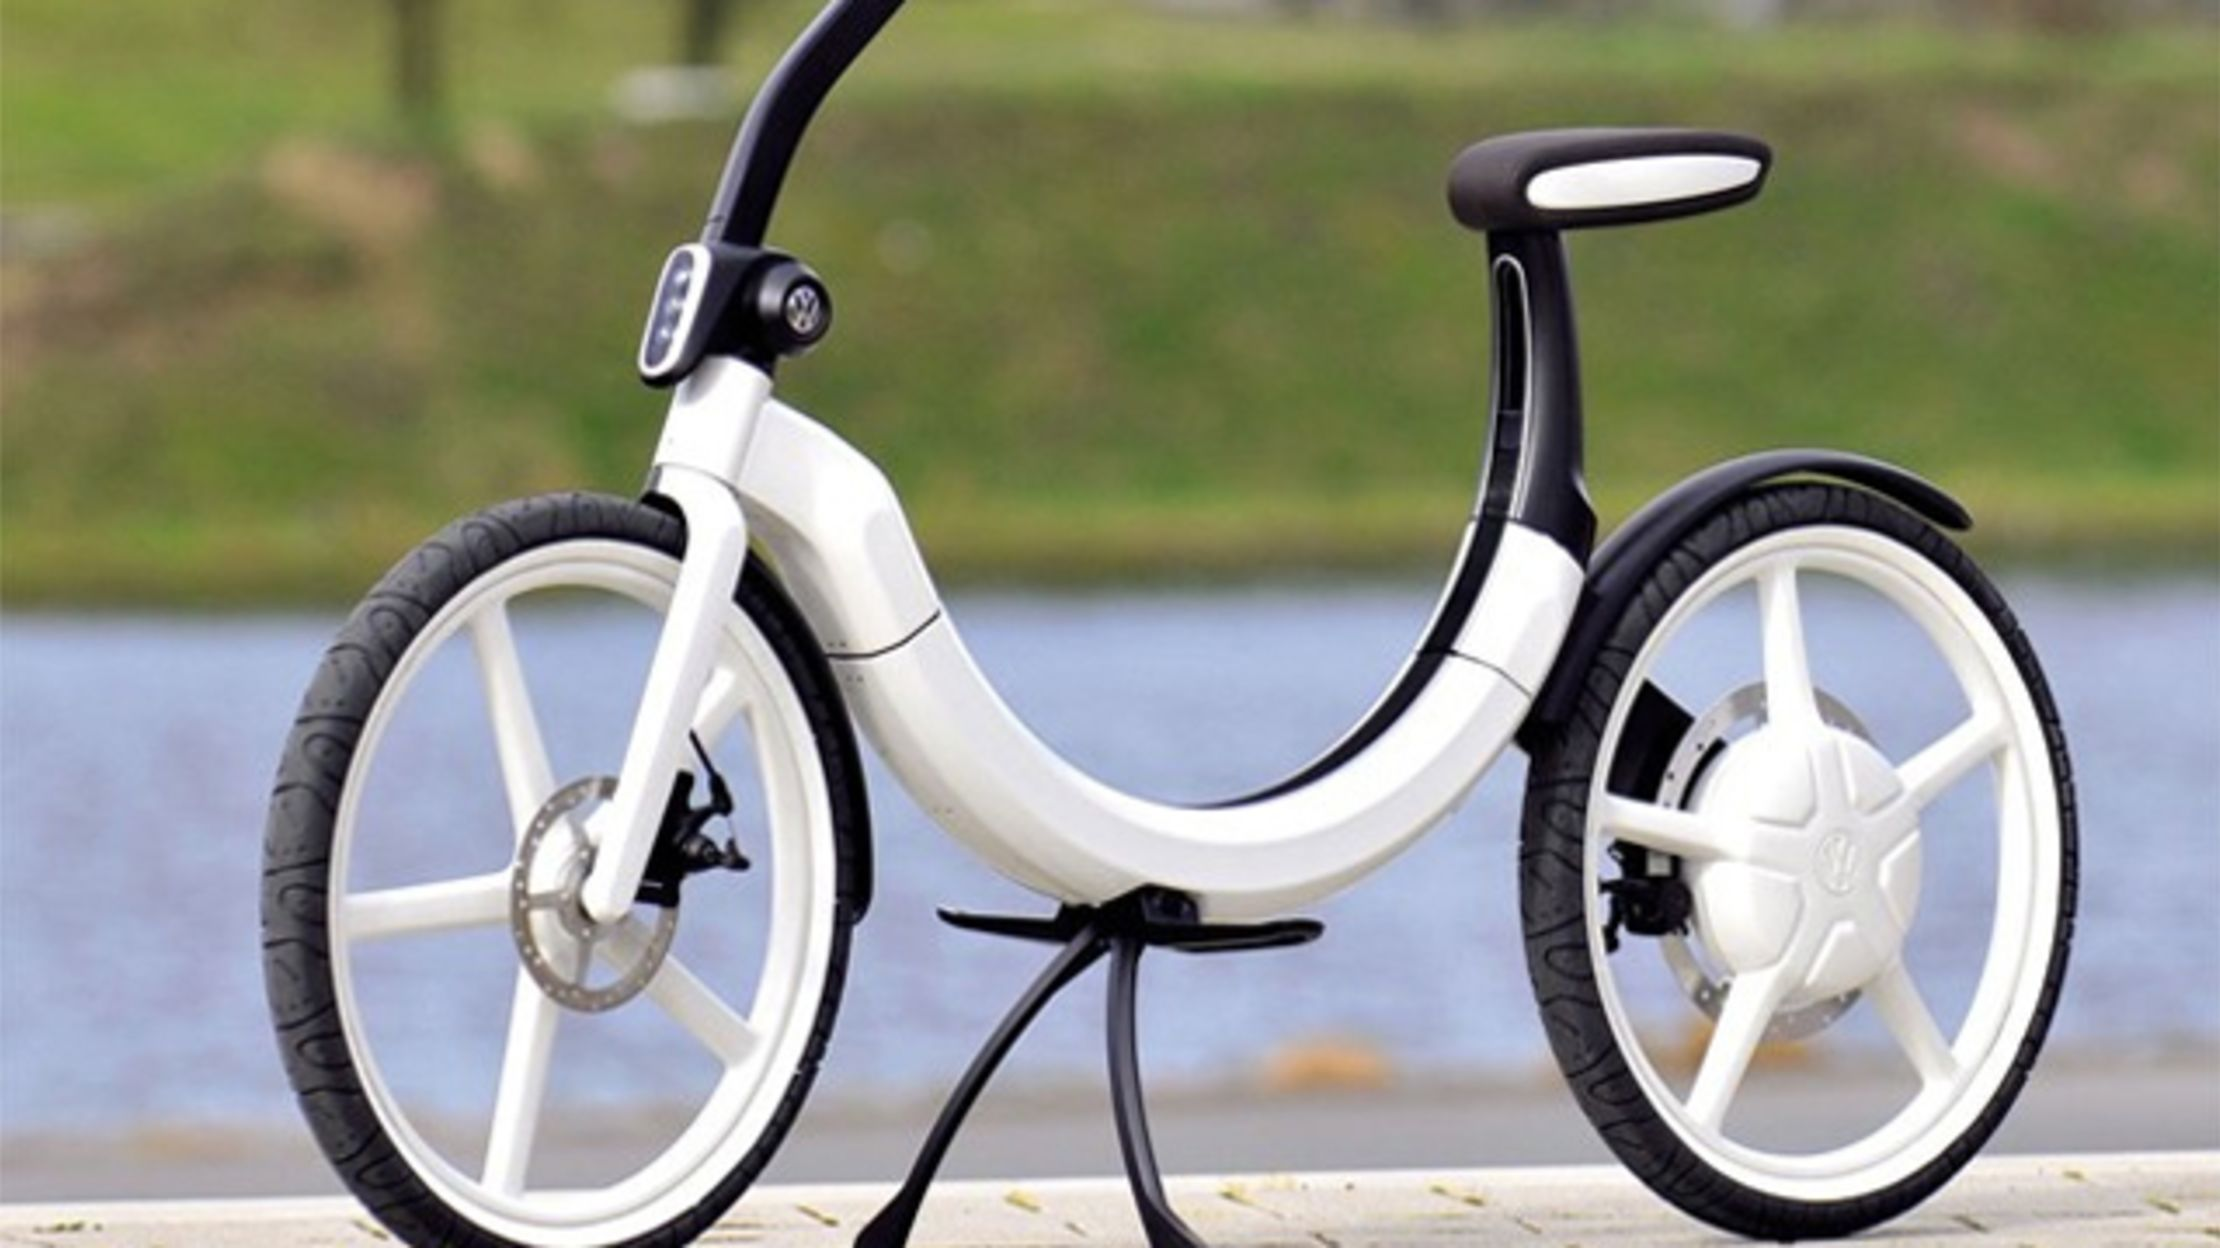 Strange Bicycle Designs